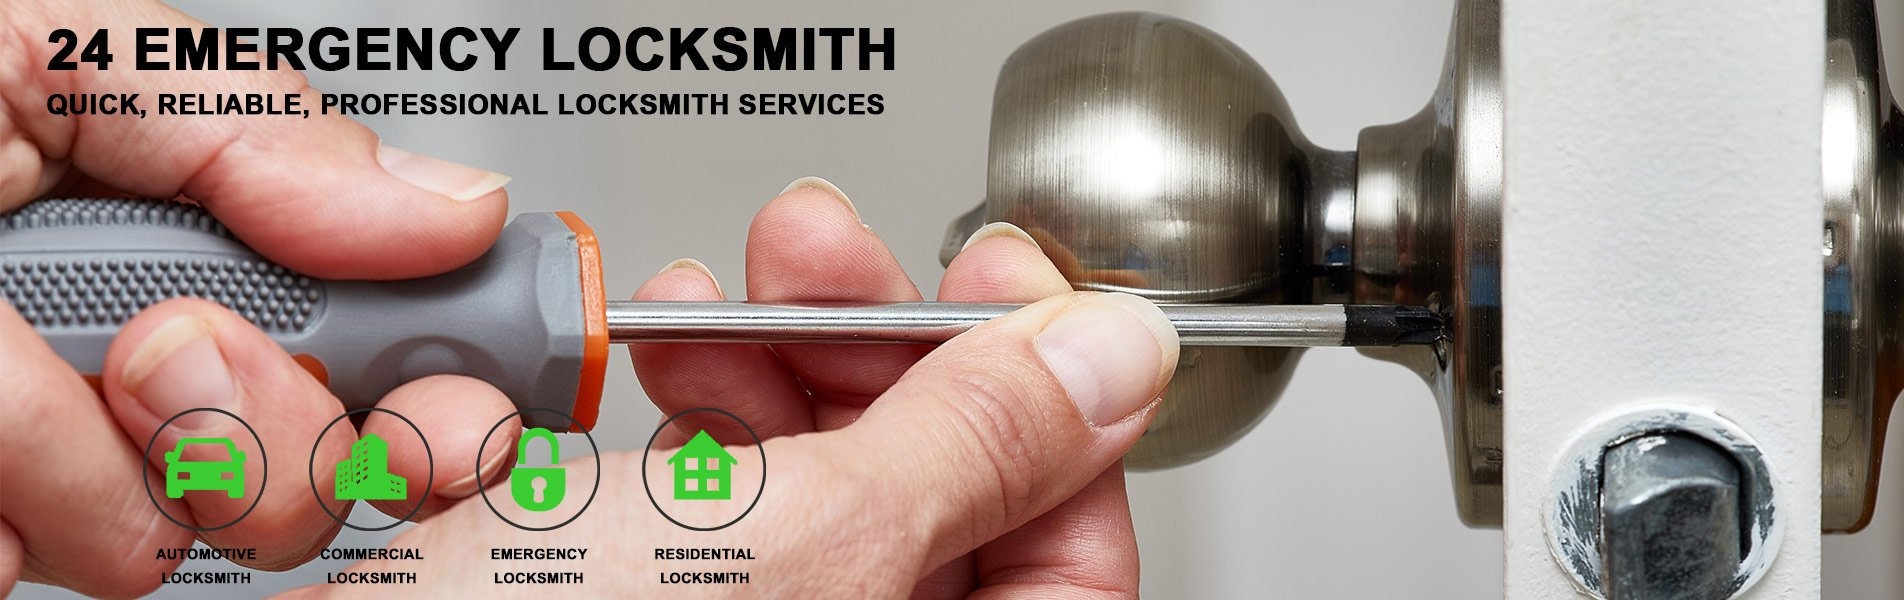 Lock Locksmith Services Riverside, NJ 856-506-3209